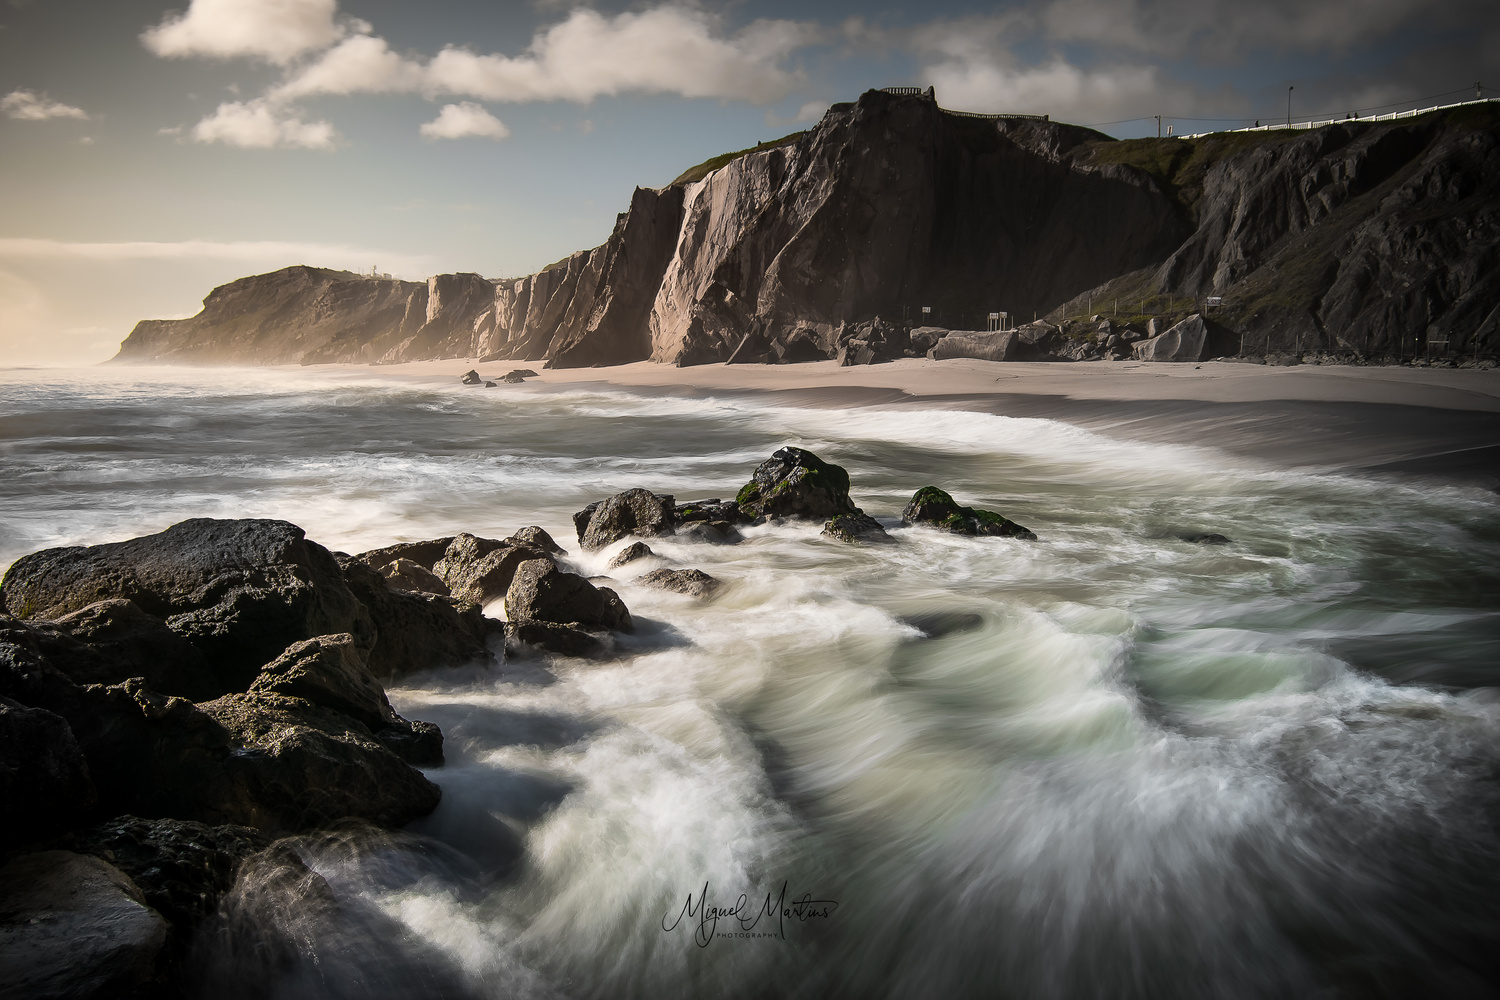 Outcrop by Miguel Martins